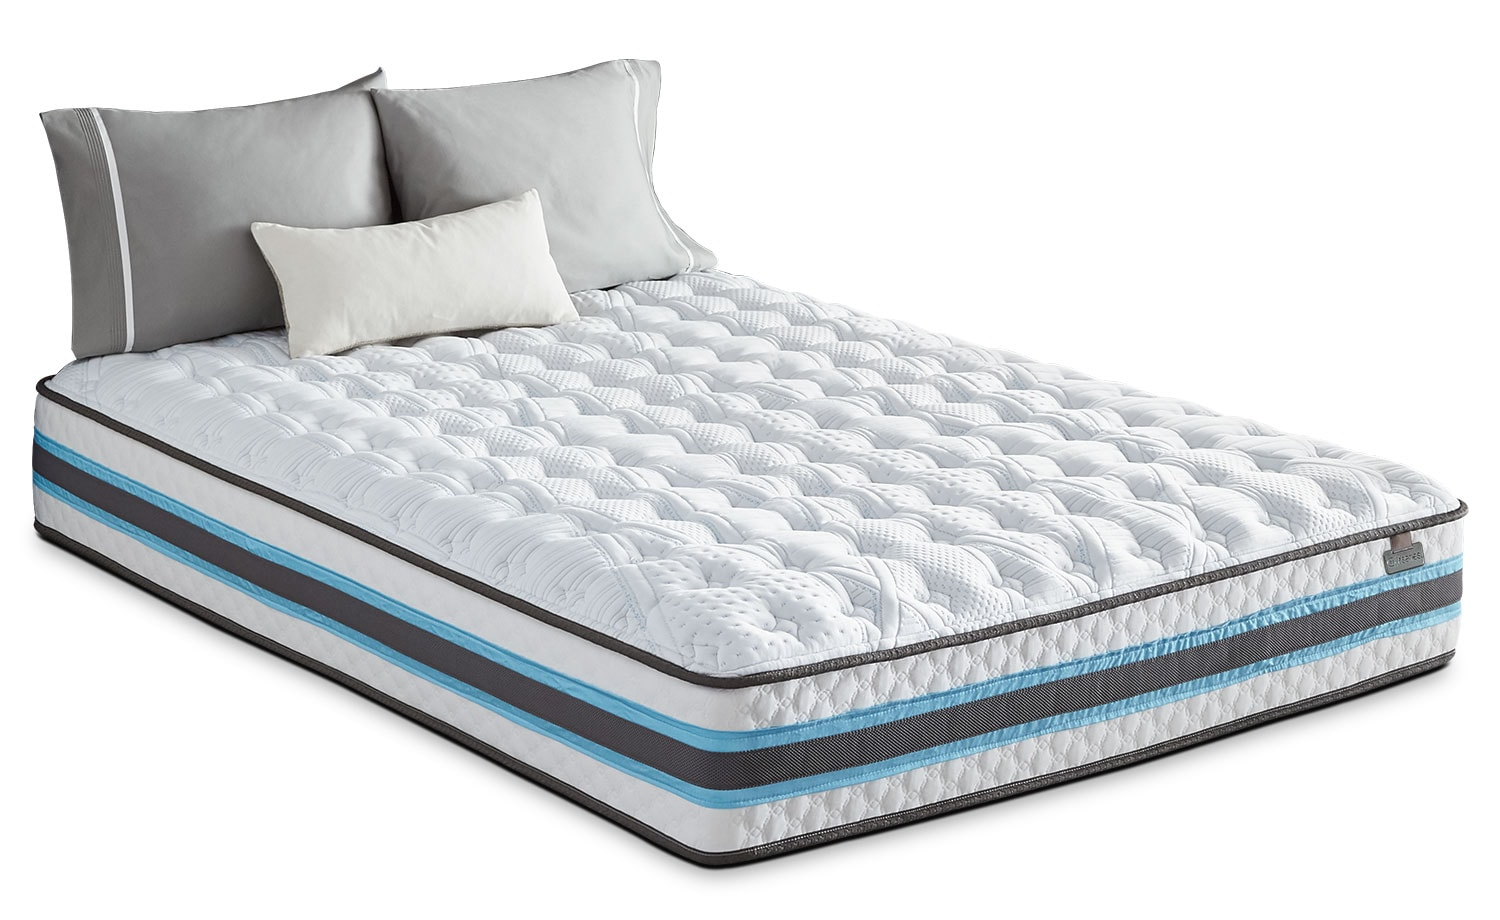 Mattresses and Bedding - Serta iSeries® Atmosphere Tight-Top Firm Queen Mattress